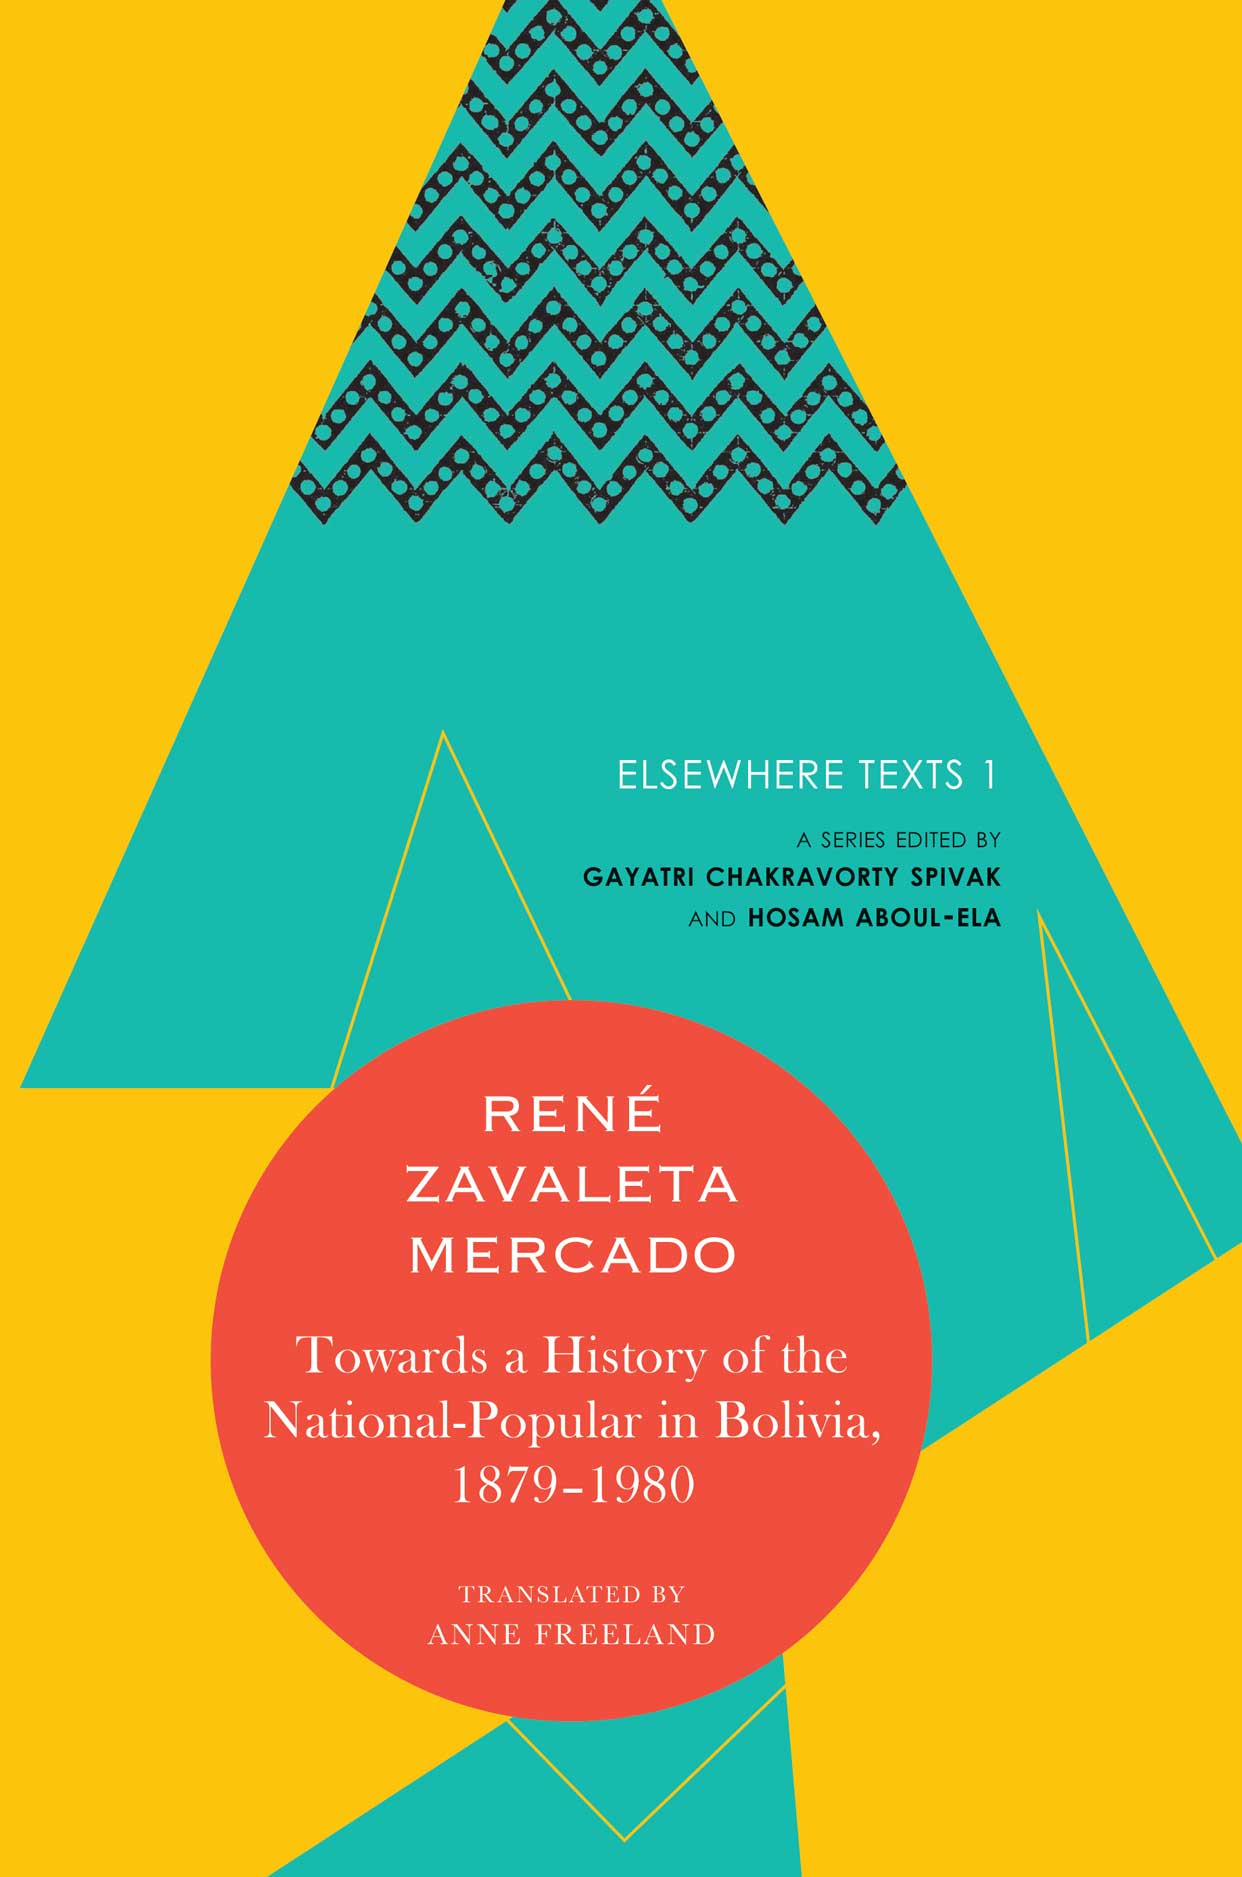 Towards a History of the National-Popular in Bolivia, 1879–1980 by René Zavaleta Mercado |  Seagull Books